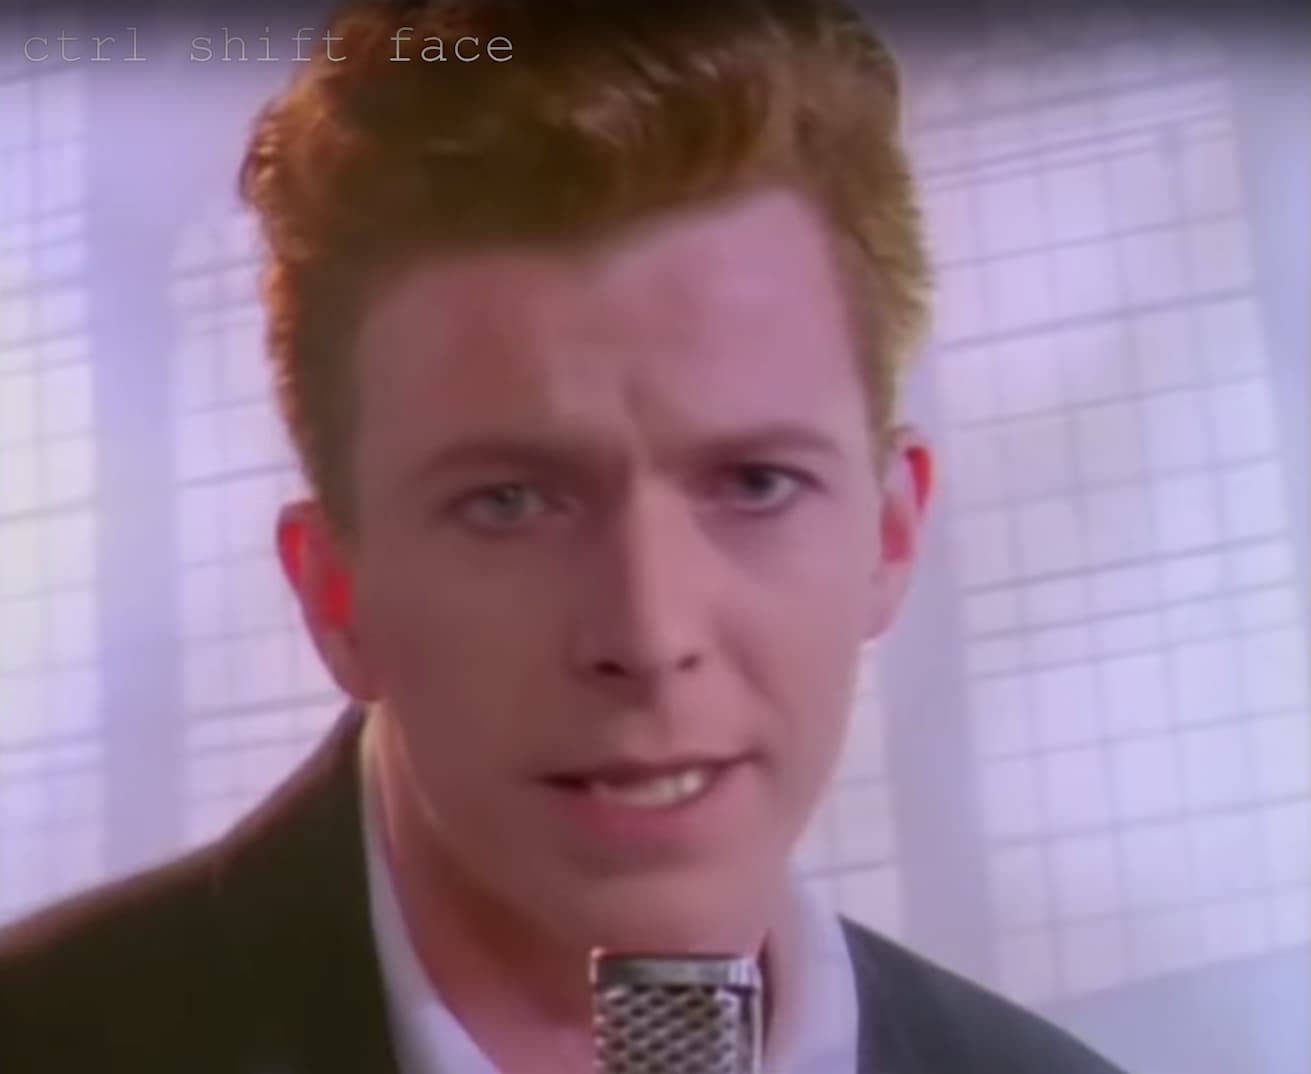 Ctrl Shift Face | David Bowie - Deep Fake Love Musikvideo